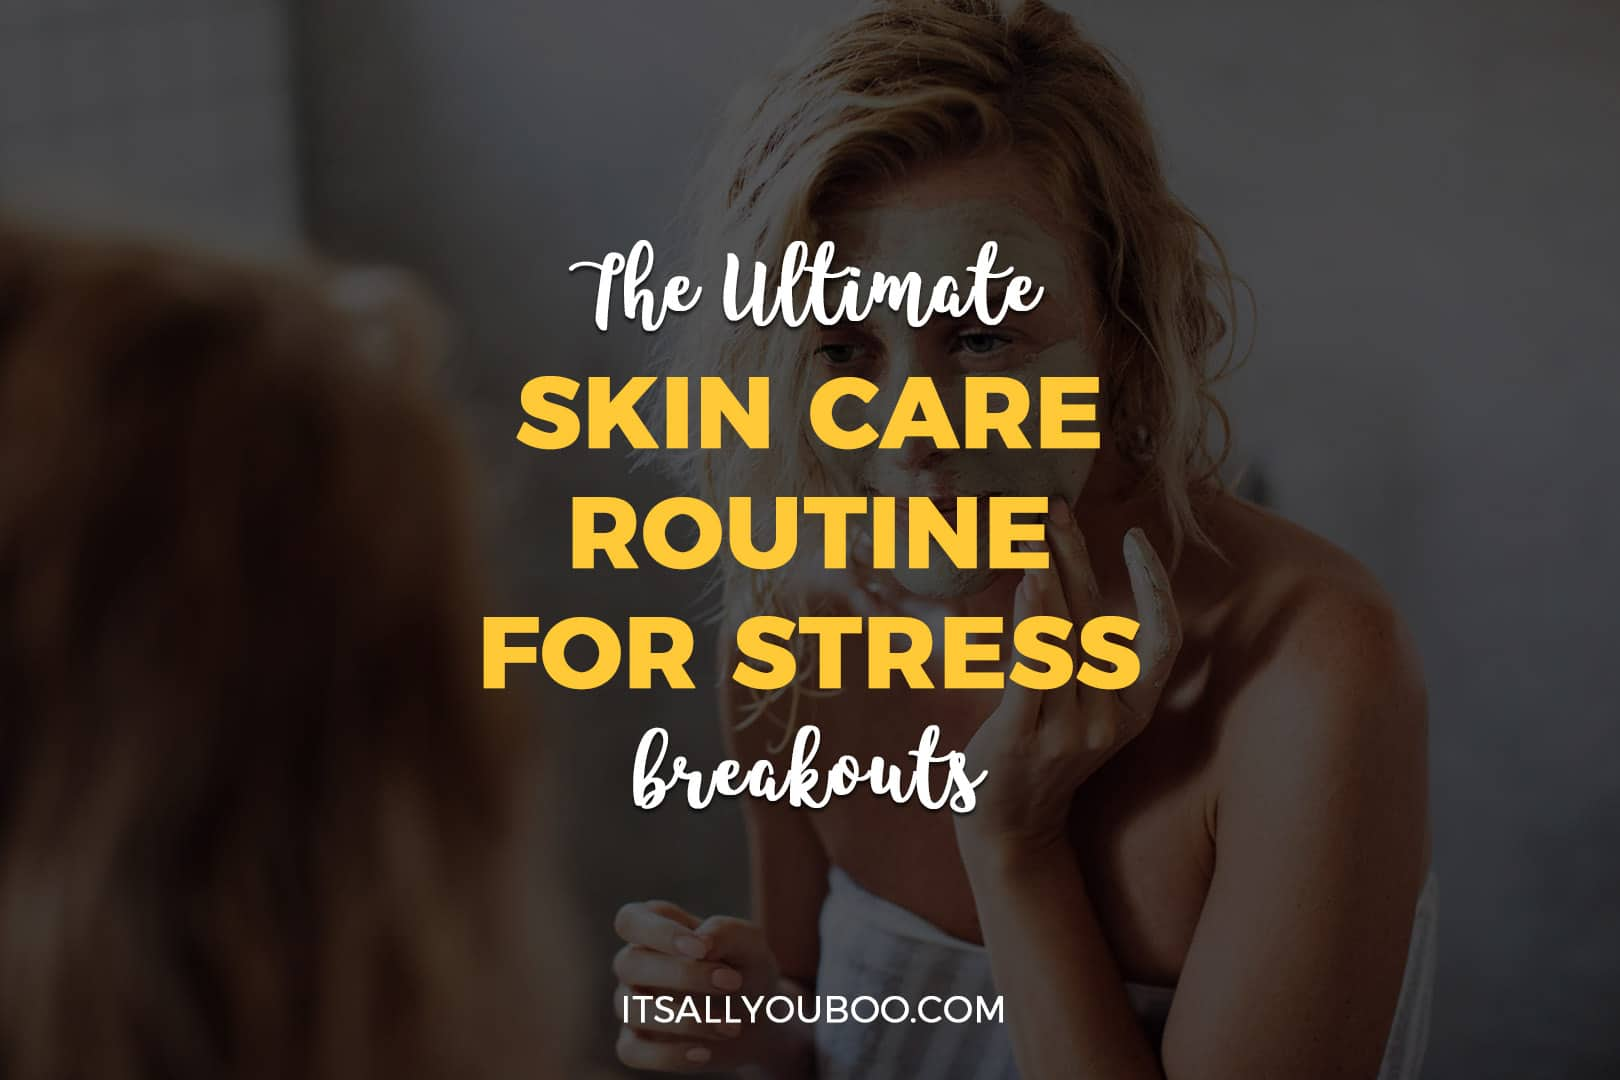 Ultimate Daily Skin Care Routine For Stress Breakouts